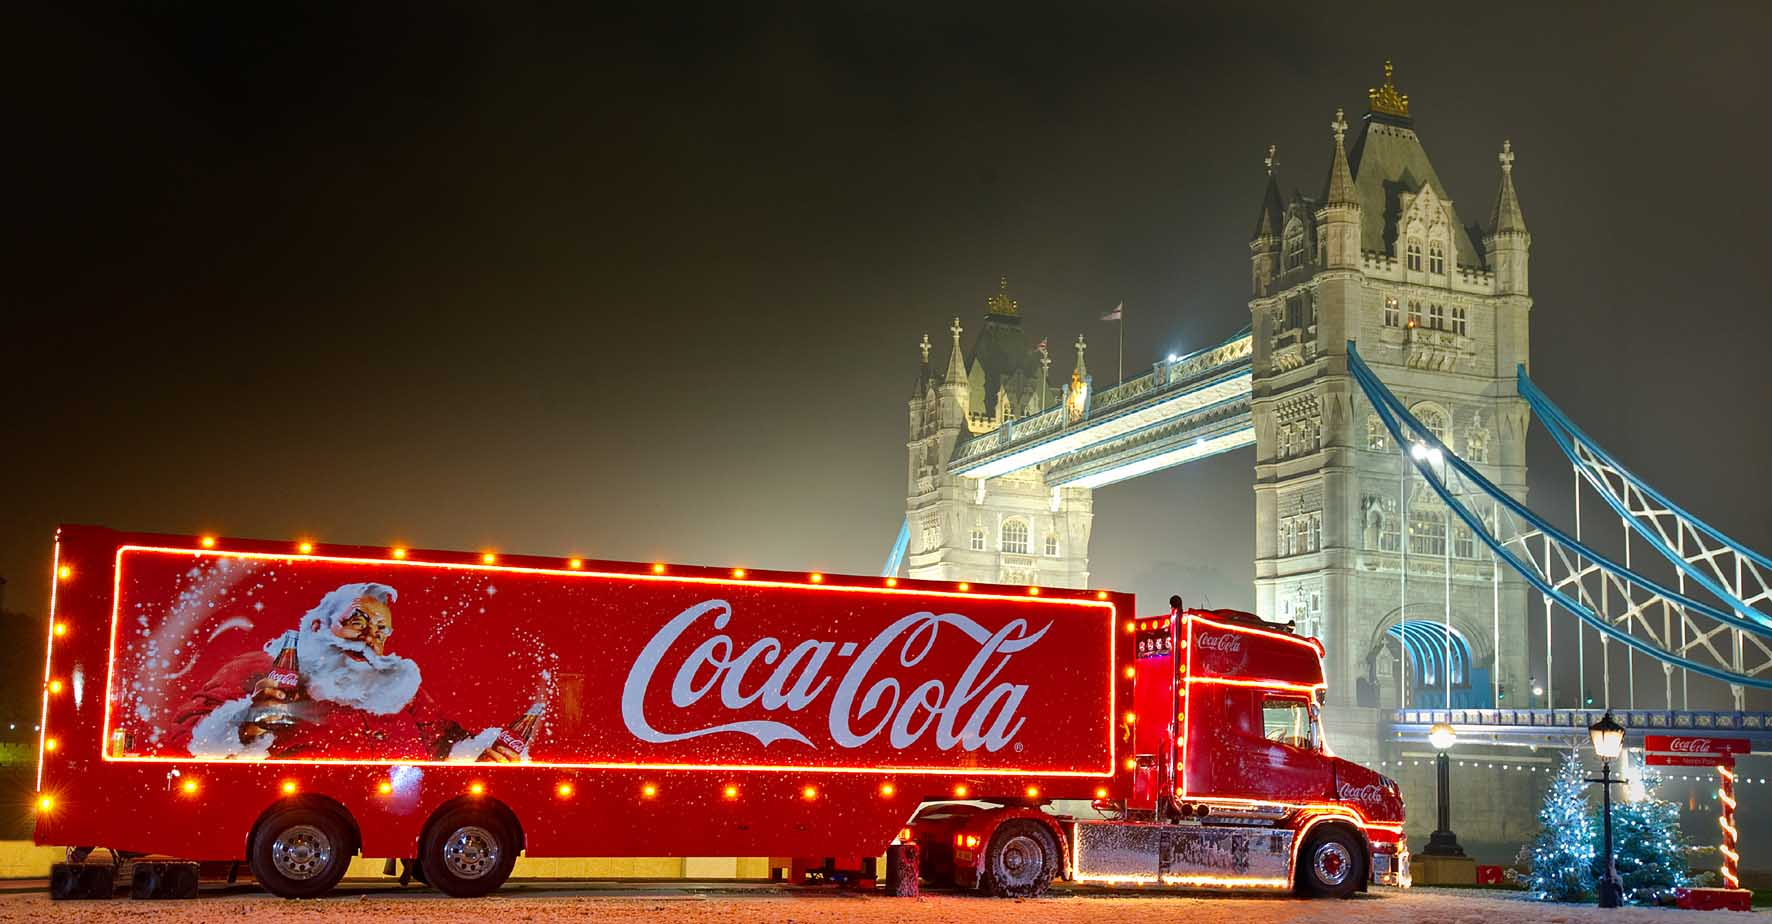 Beautiful Coca Cola Truck Near London Bridge